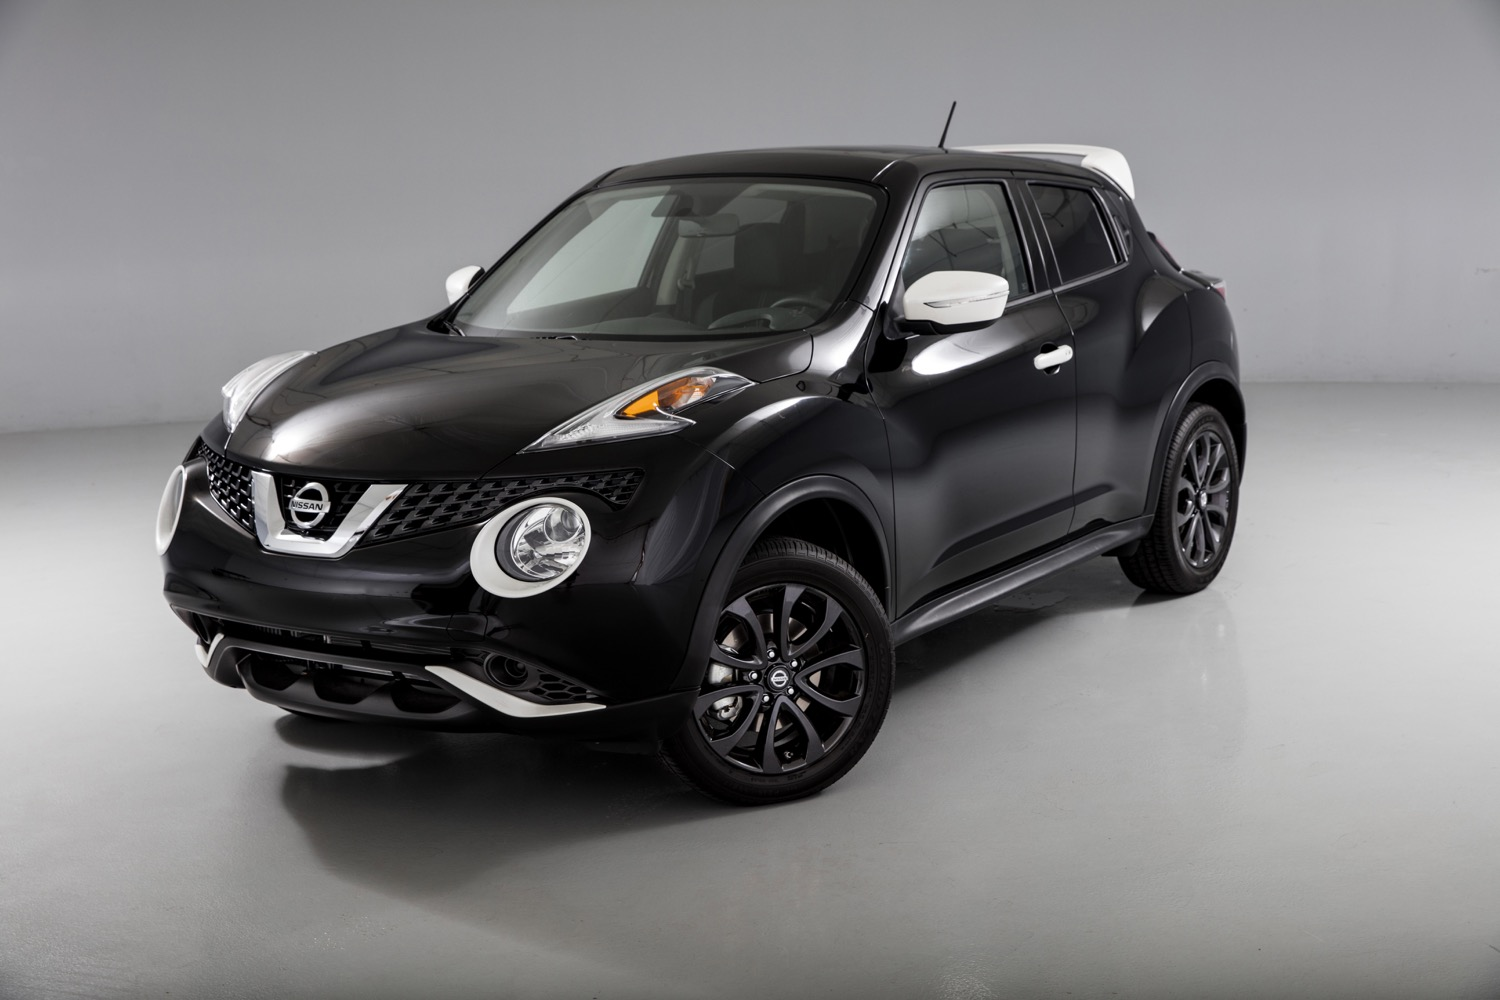 2018 nissan juke redesign.  juke no juke sources say nissan may kill off its funky subcompact crossover inside 2018 nissan juke redesign x